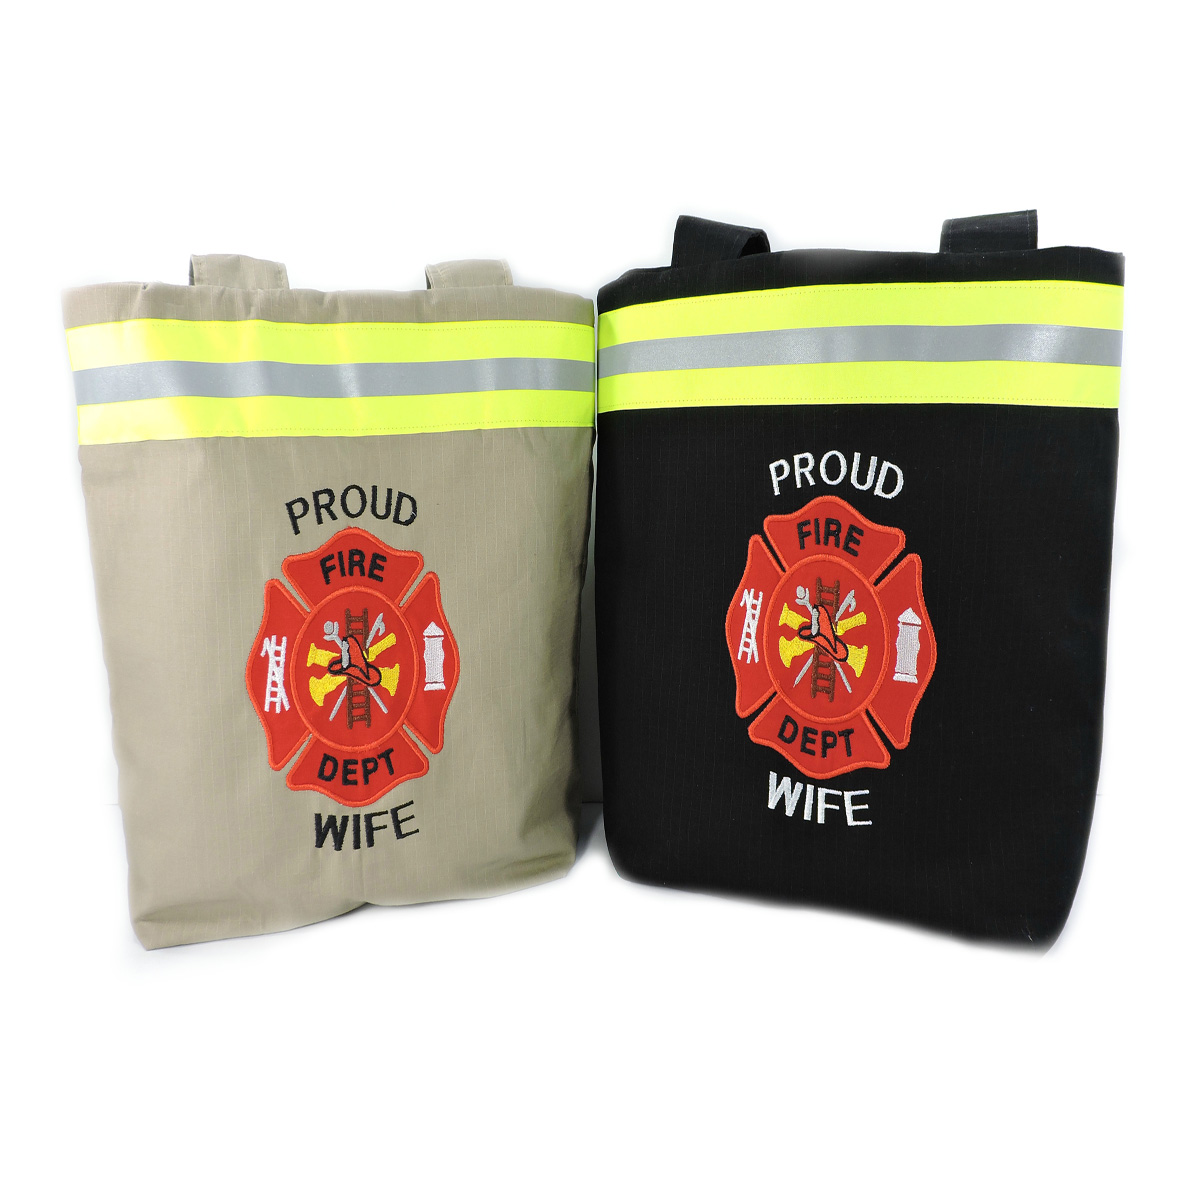 Firefighter-purse